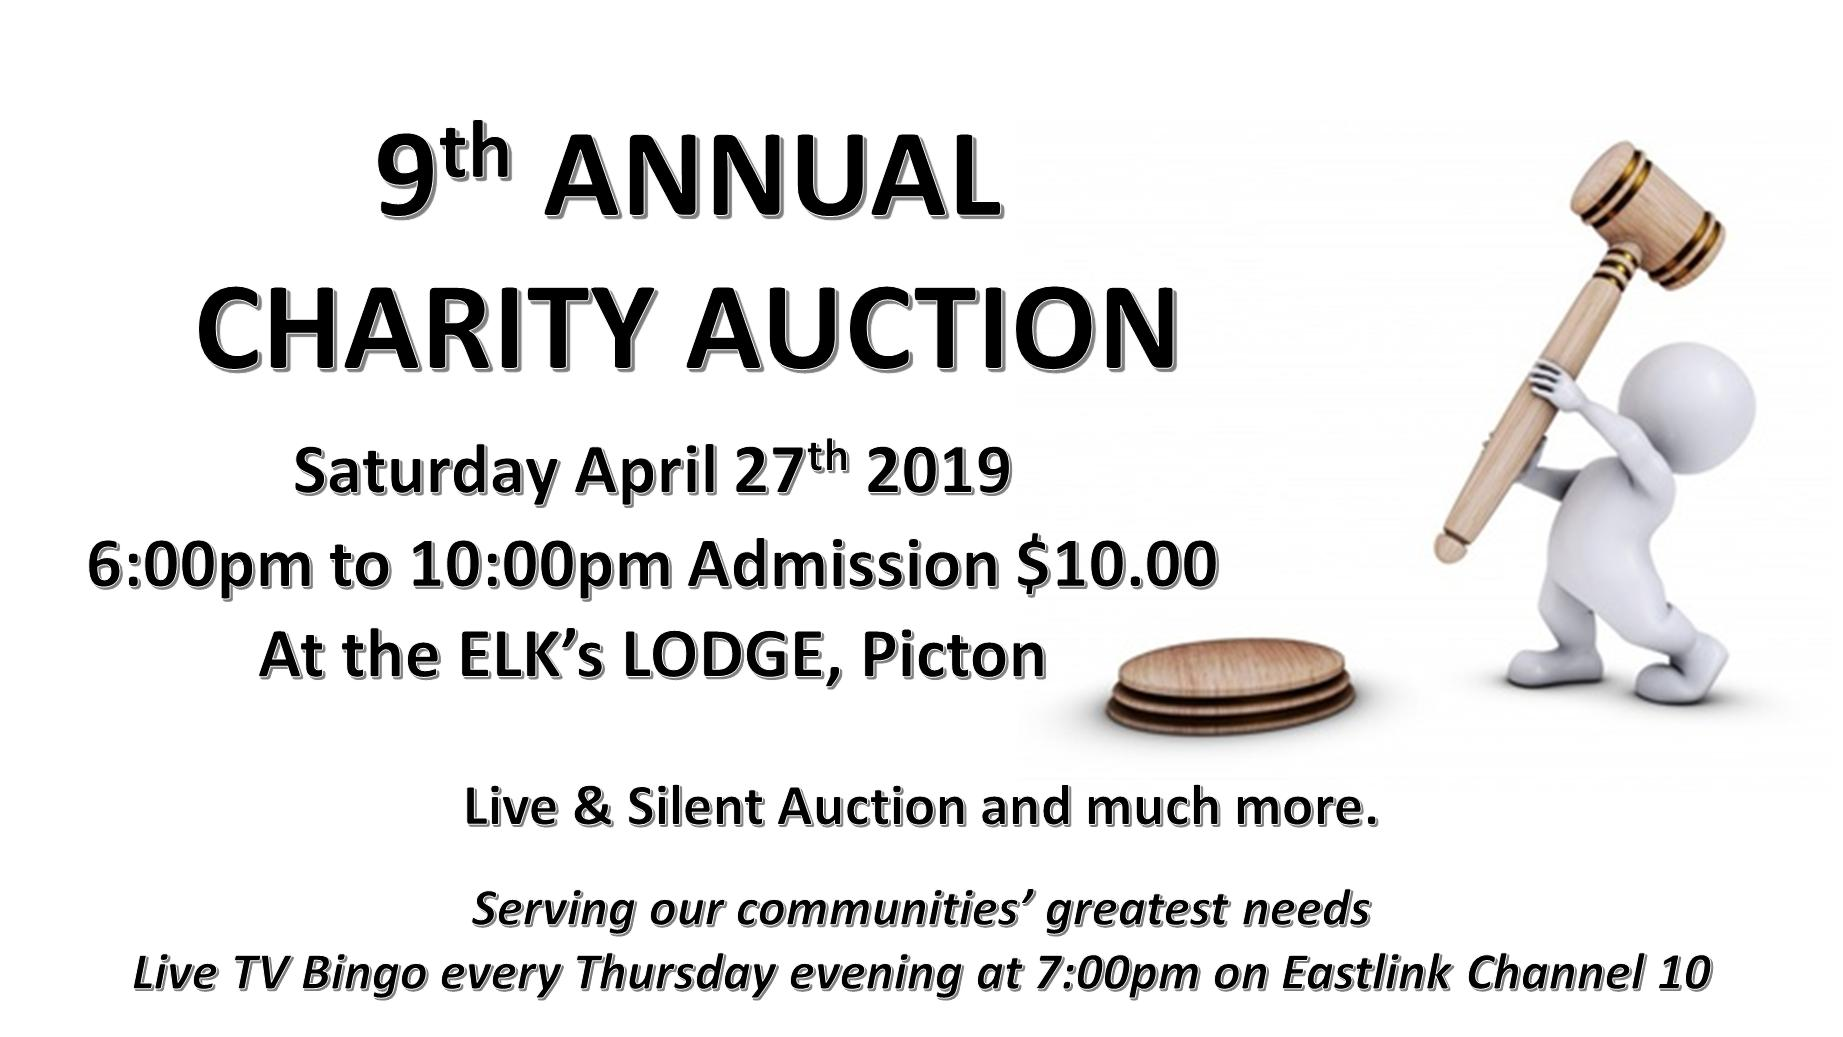 9th Annual Charity Auction